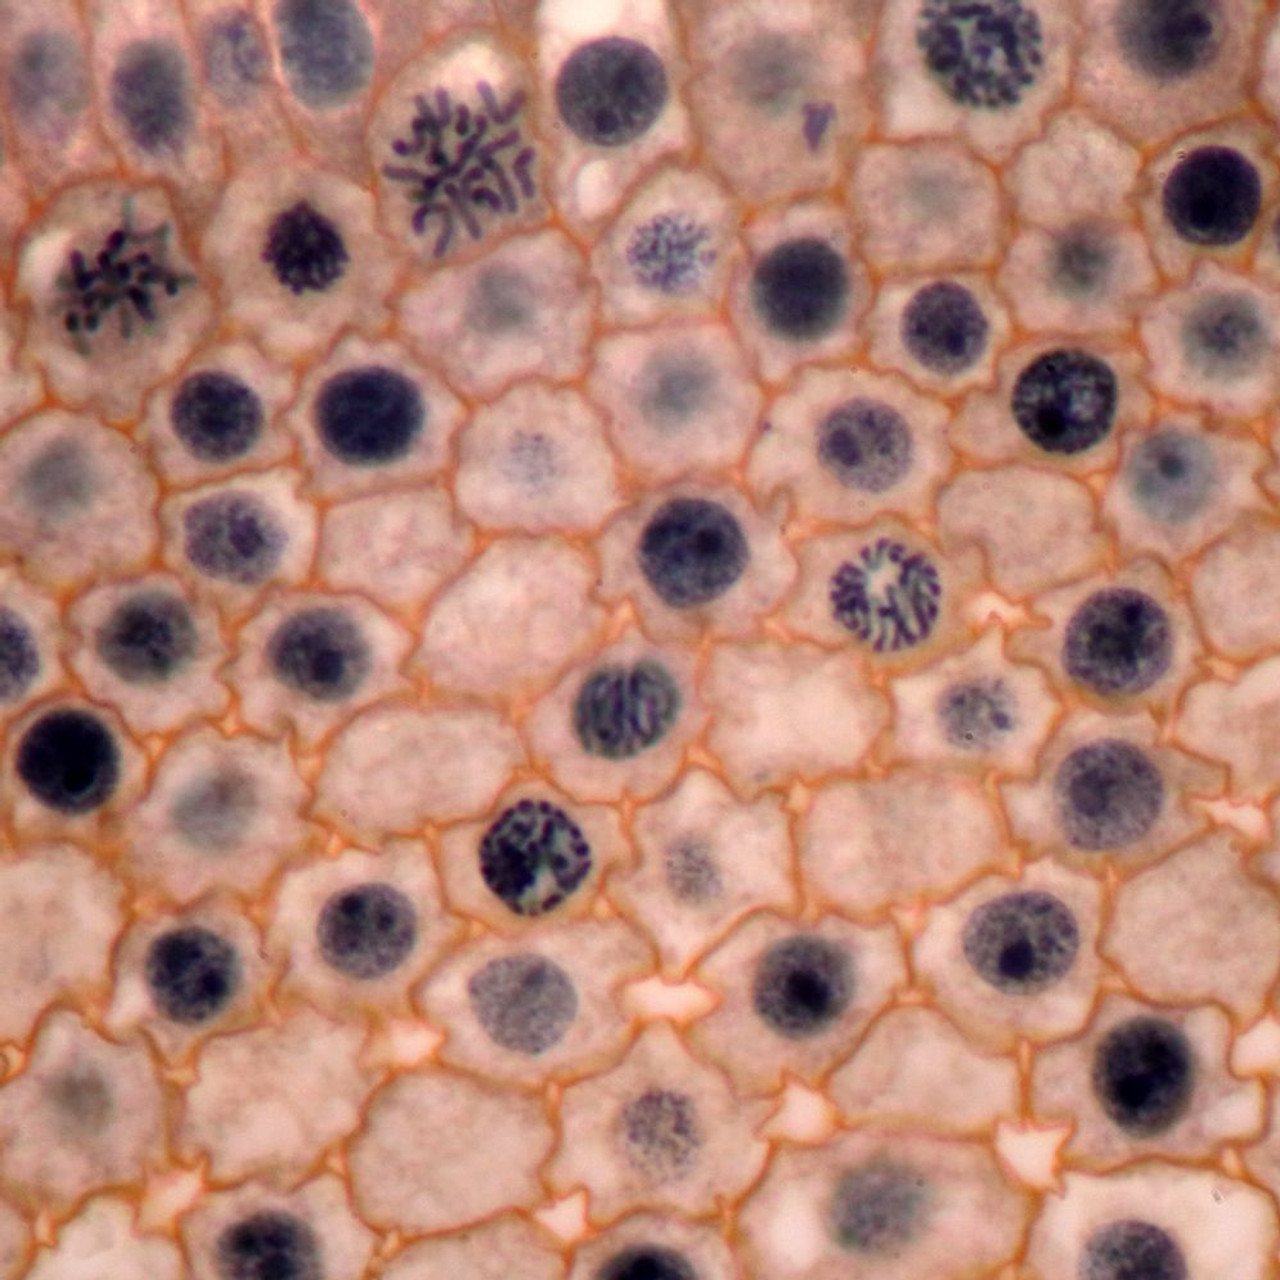 PMS27.12C - Onion (Allium cepa), root tip for plant mitosis, TS, haematoxylin and orange g stain